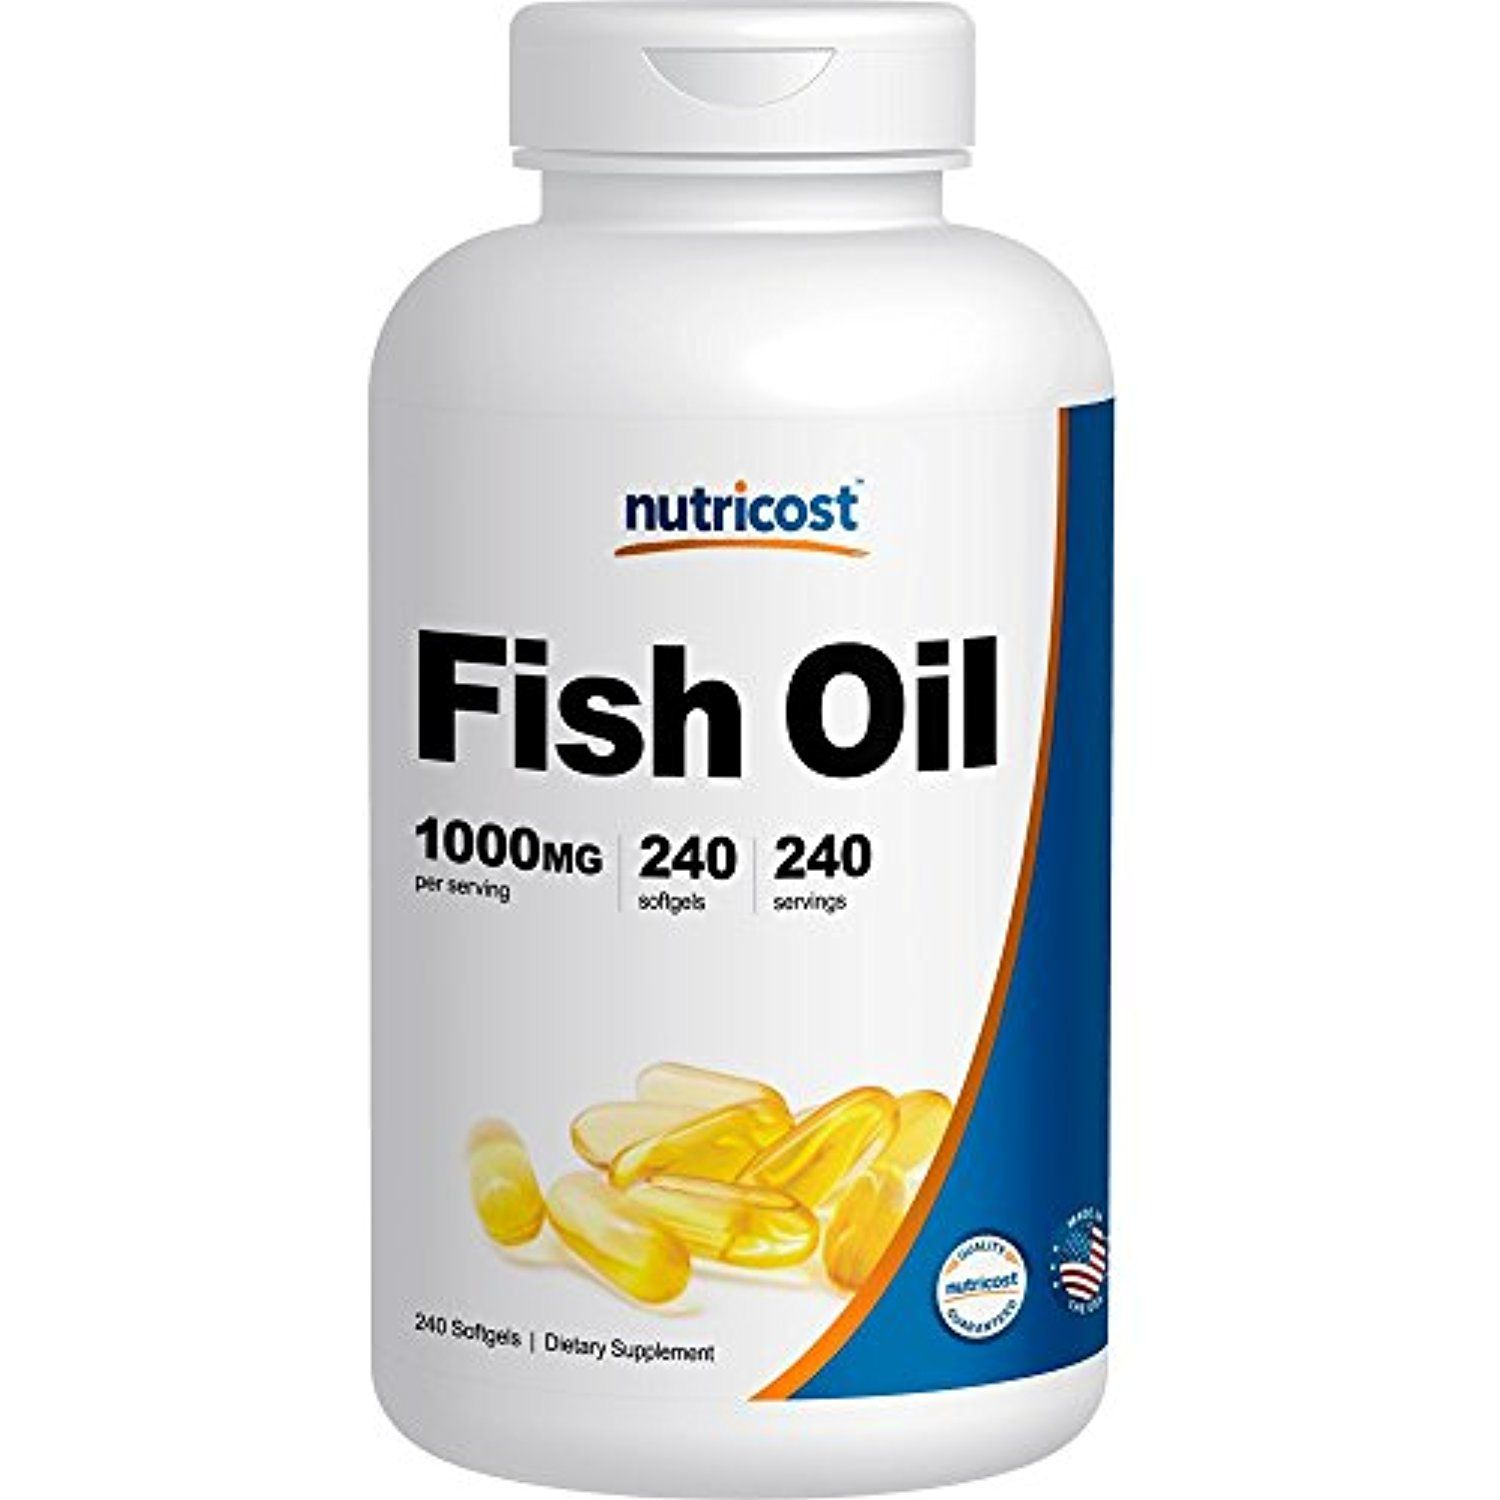 Nutricost High Quality Fish Oil 1000mg (600mg of Omega-3 ...